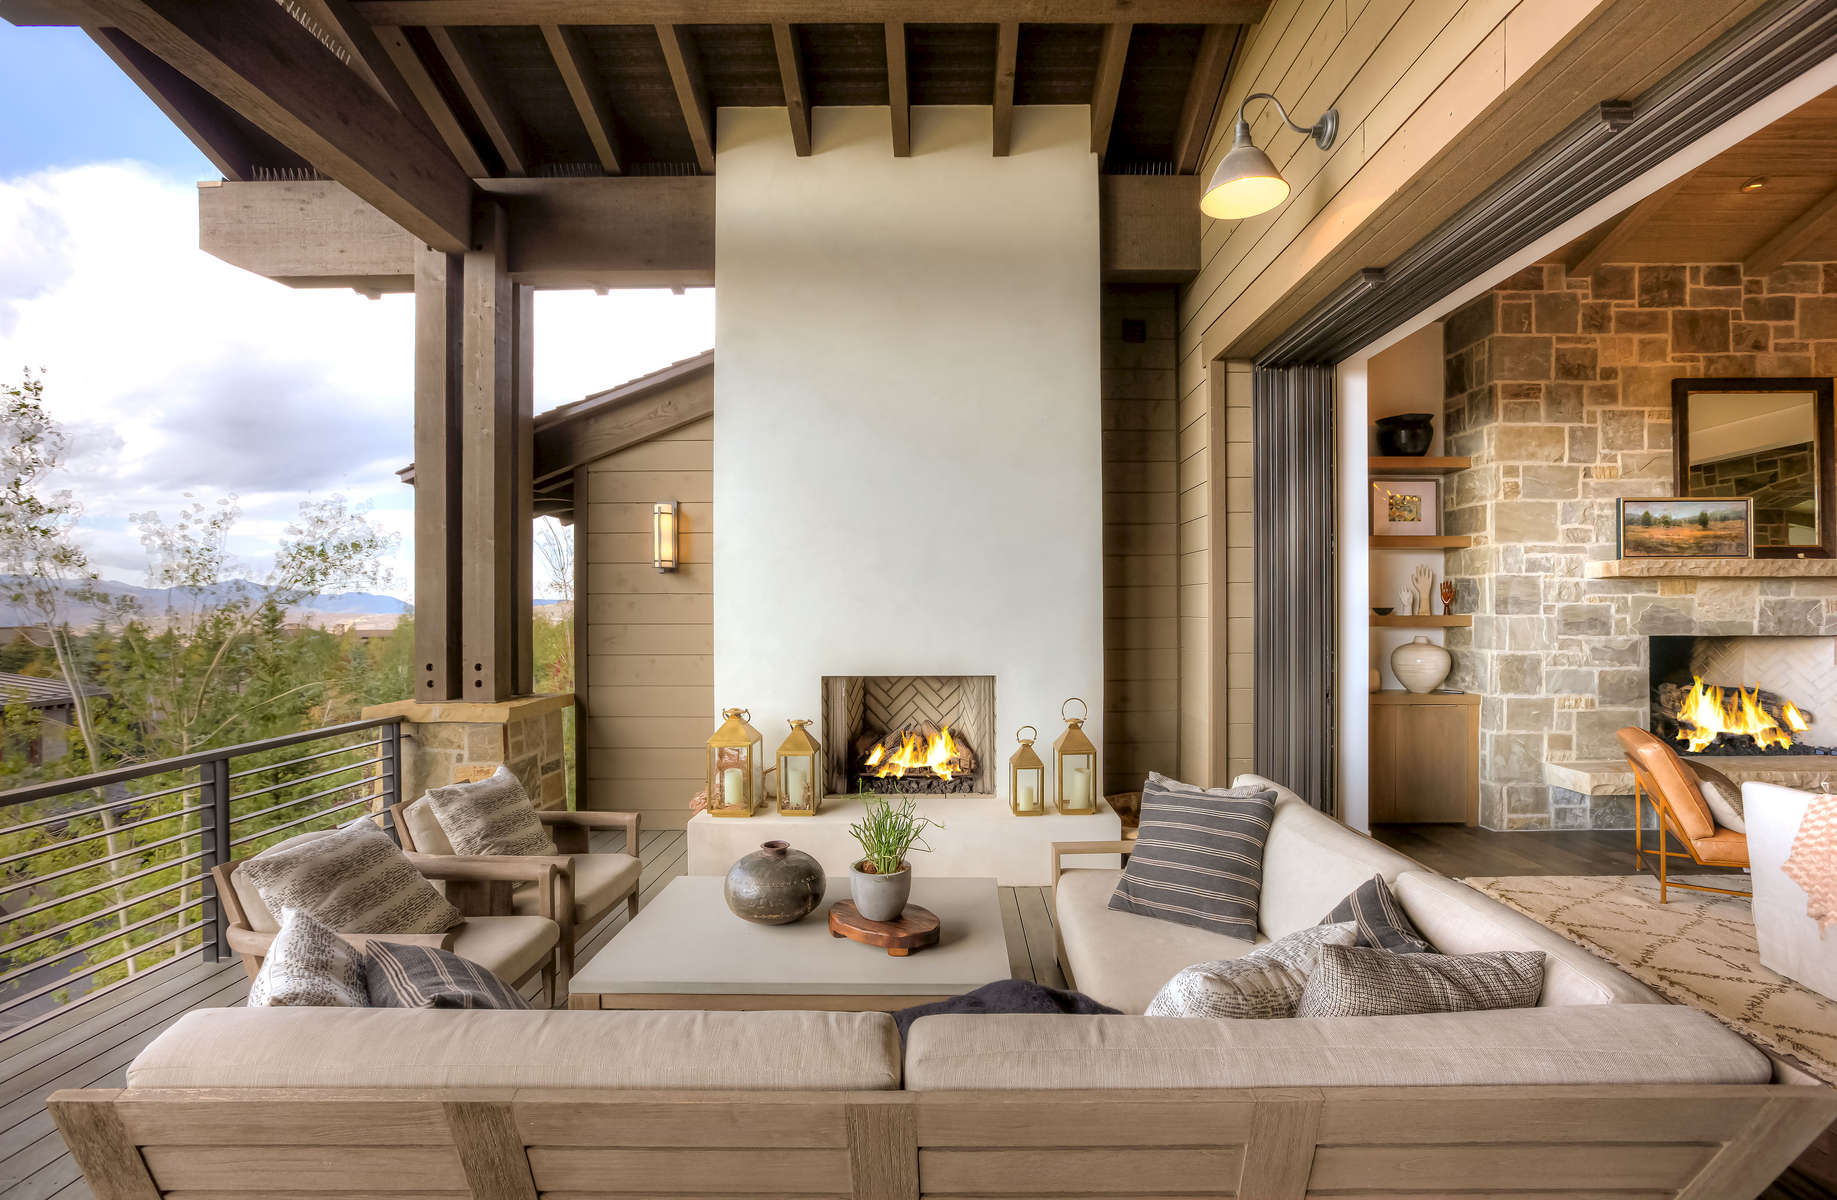 Interior view of patio living area and fireplace